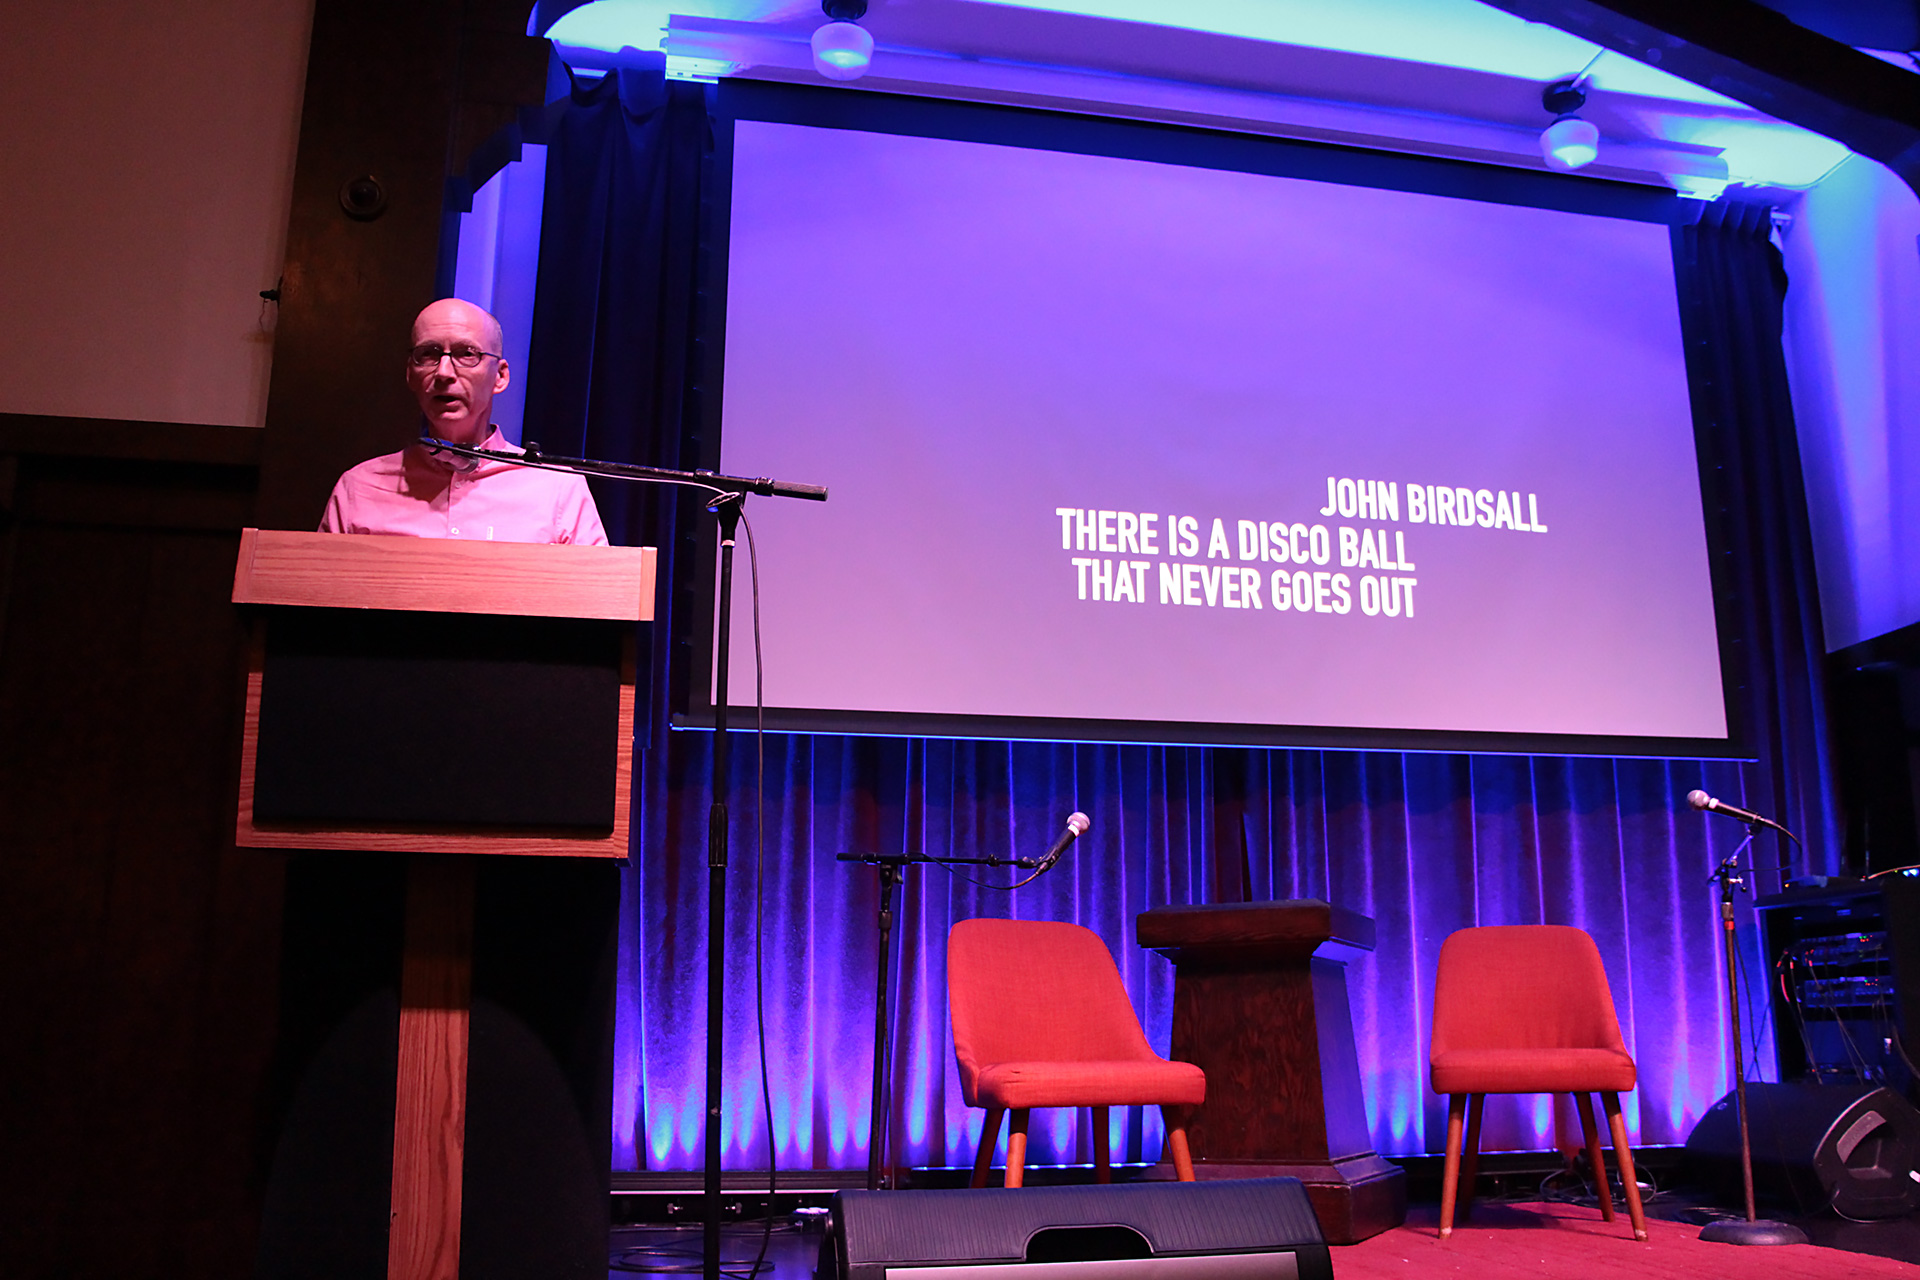 John Birdsall, an award-winning local writer, delivered a history lesson interwoven with personal travel tales exploring the refuge of queer safe spaces that exist around the world.